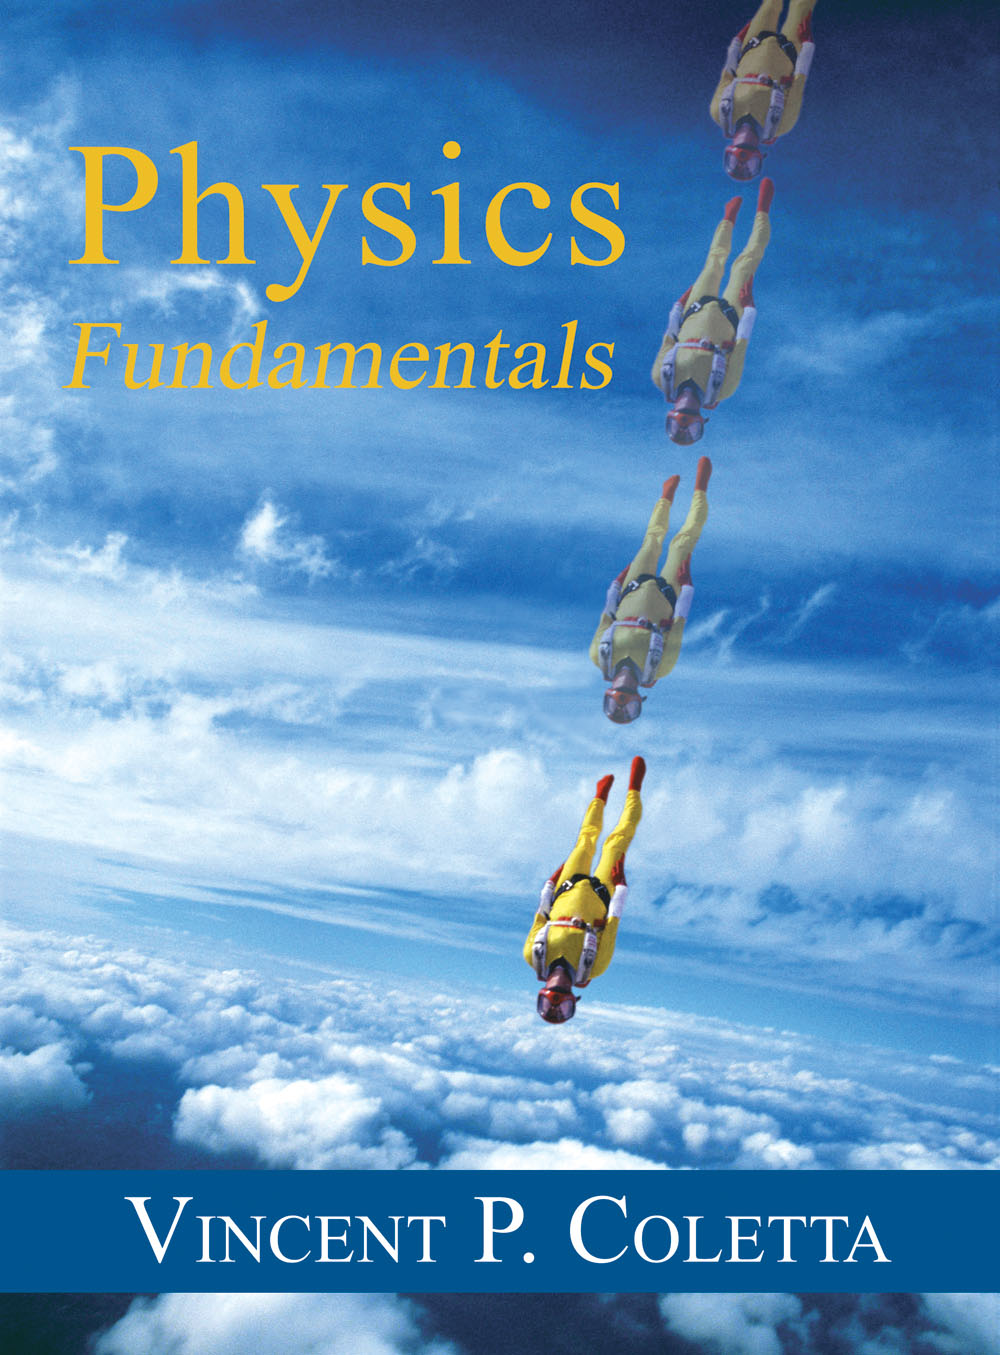 Physics Fundamentals Textbook